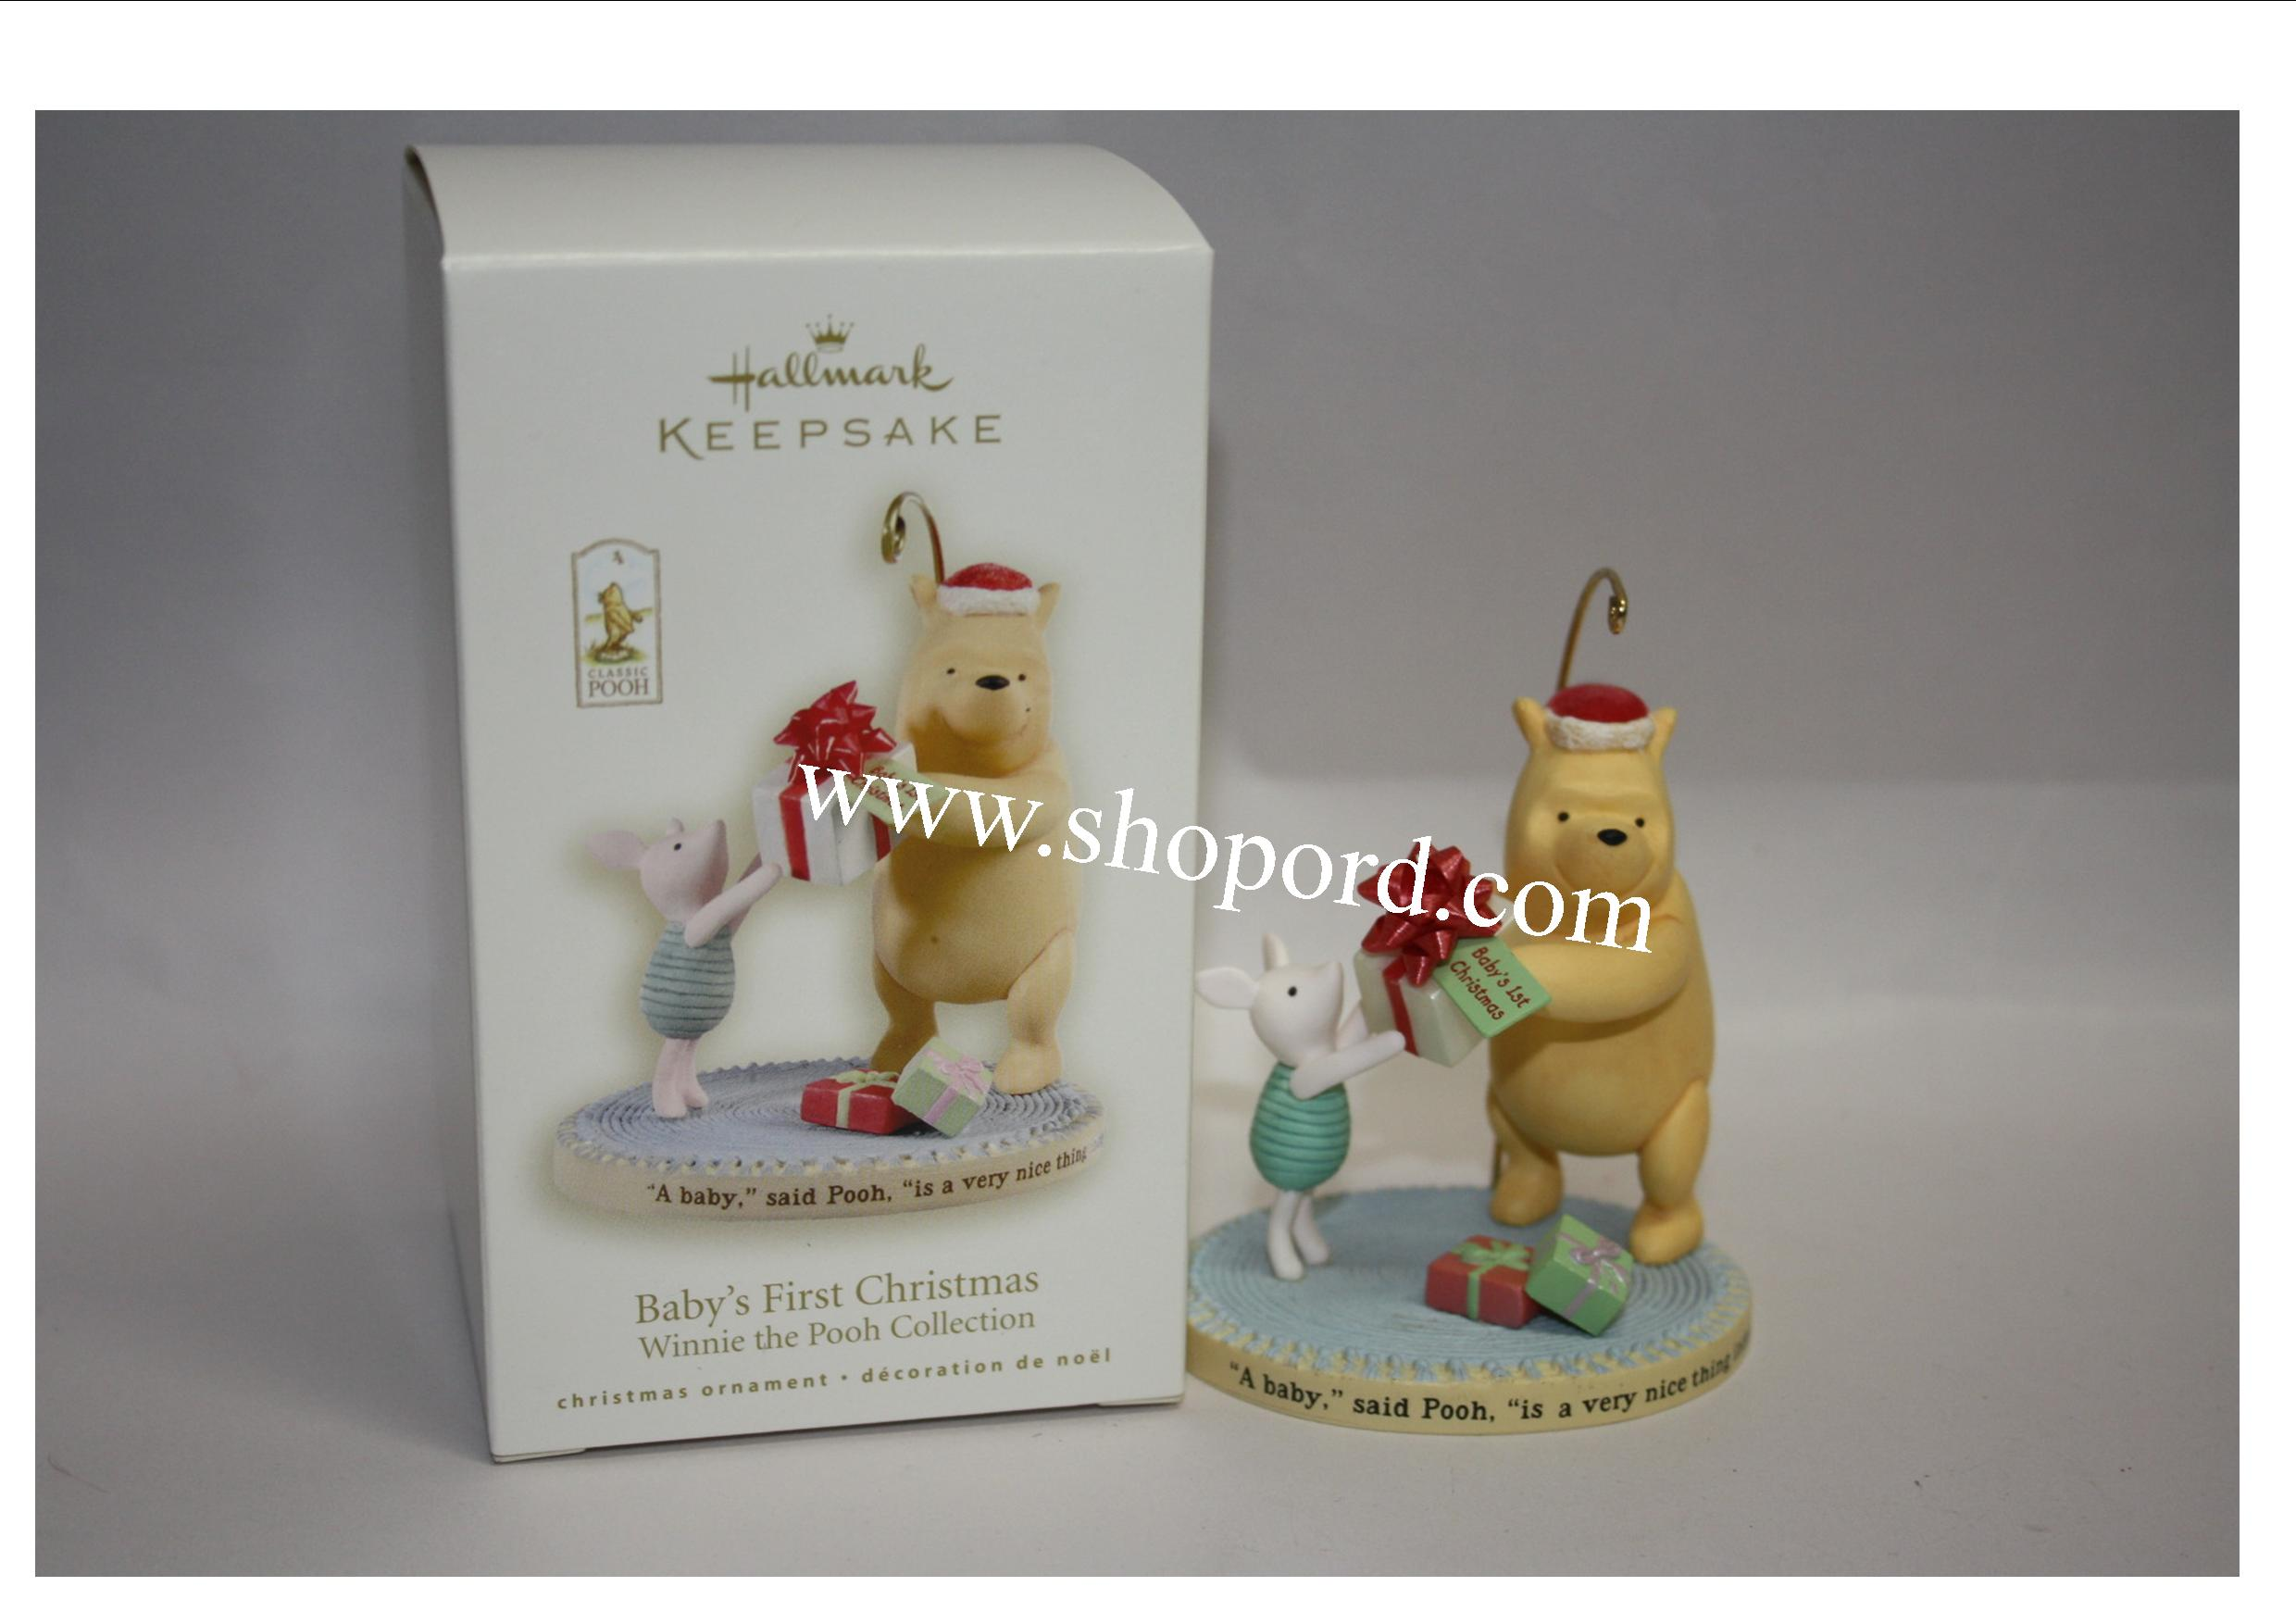 hallmark 2008 babys first christmas ornament winnie the pooh collection qxd6121 - Winnie The Pooh Christmas Decorations